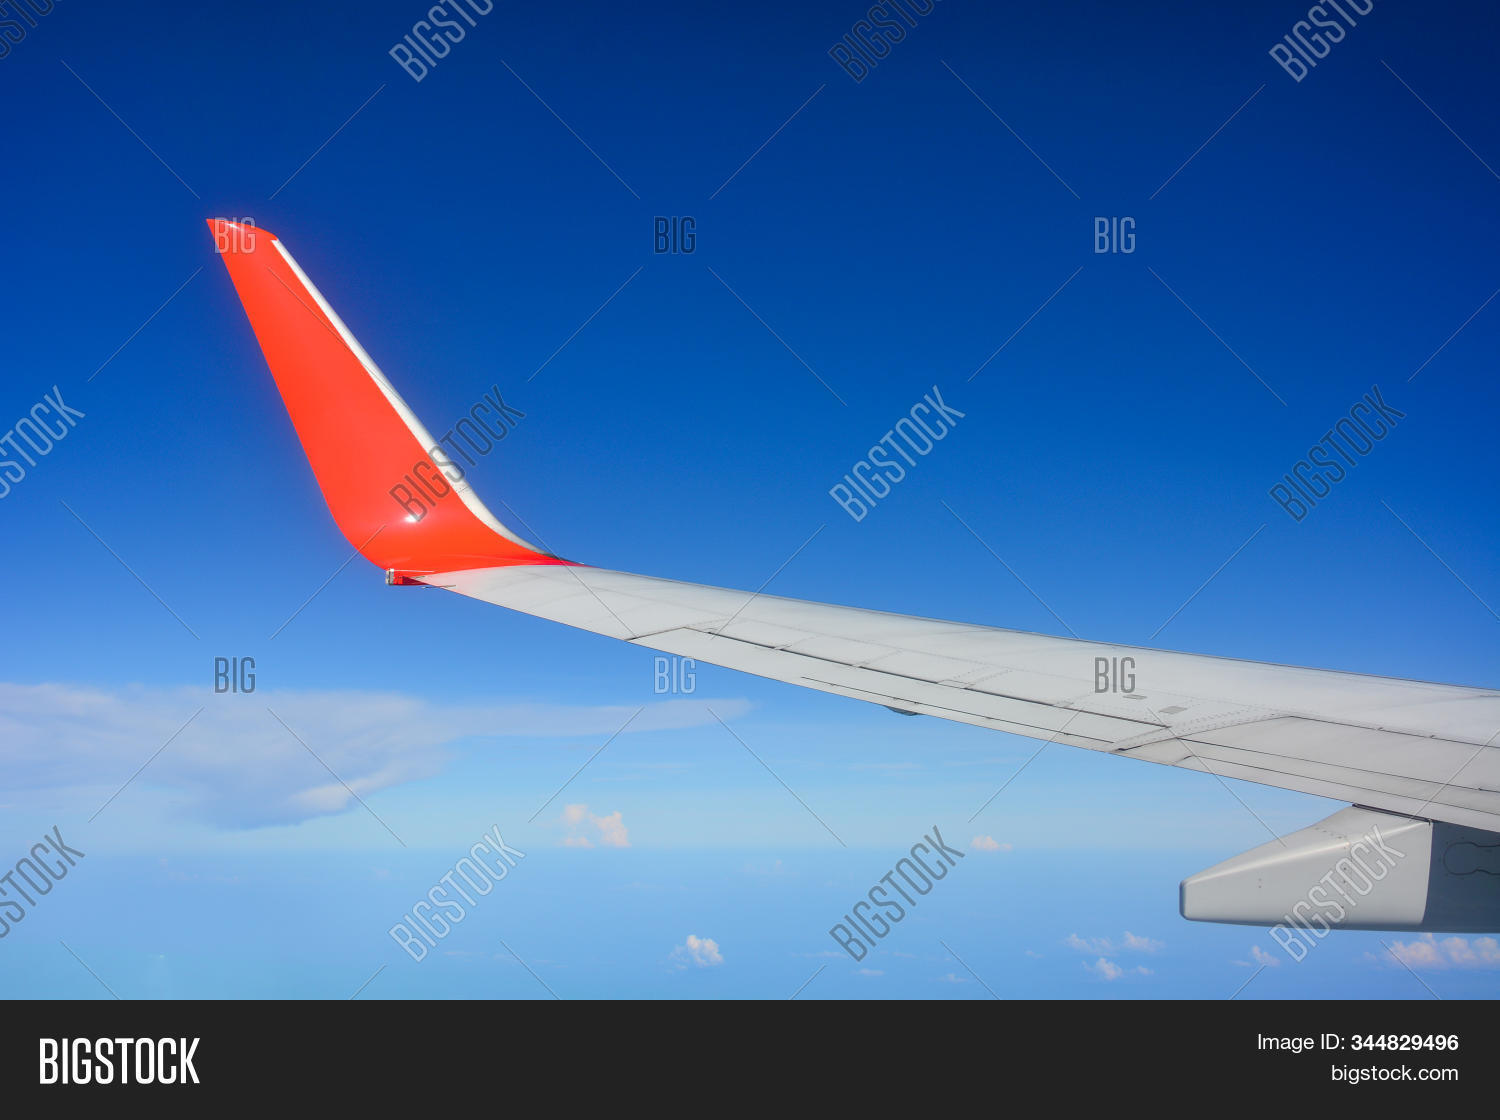 Red Wing Aircraft View Image Photo Free Trial Bigstock